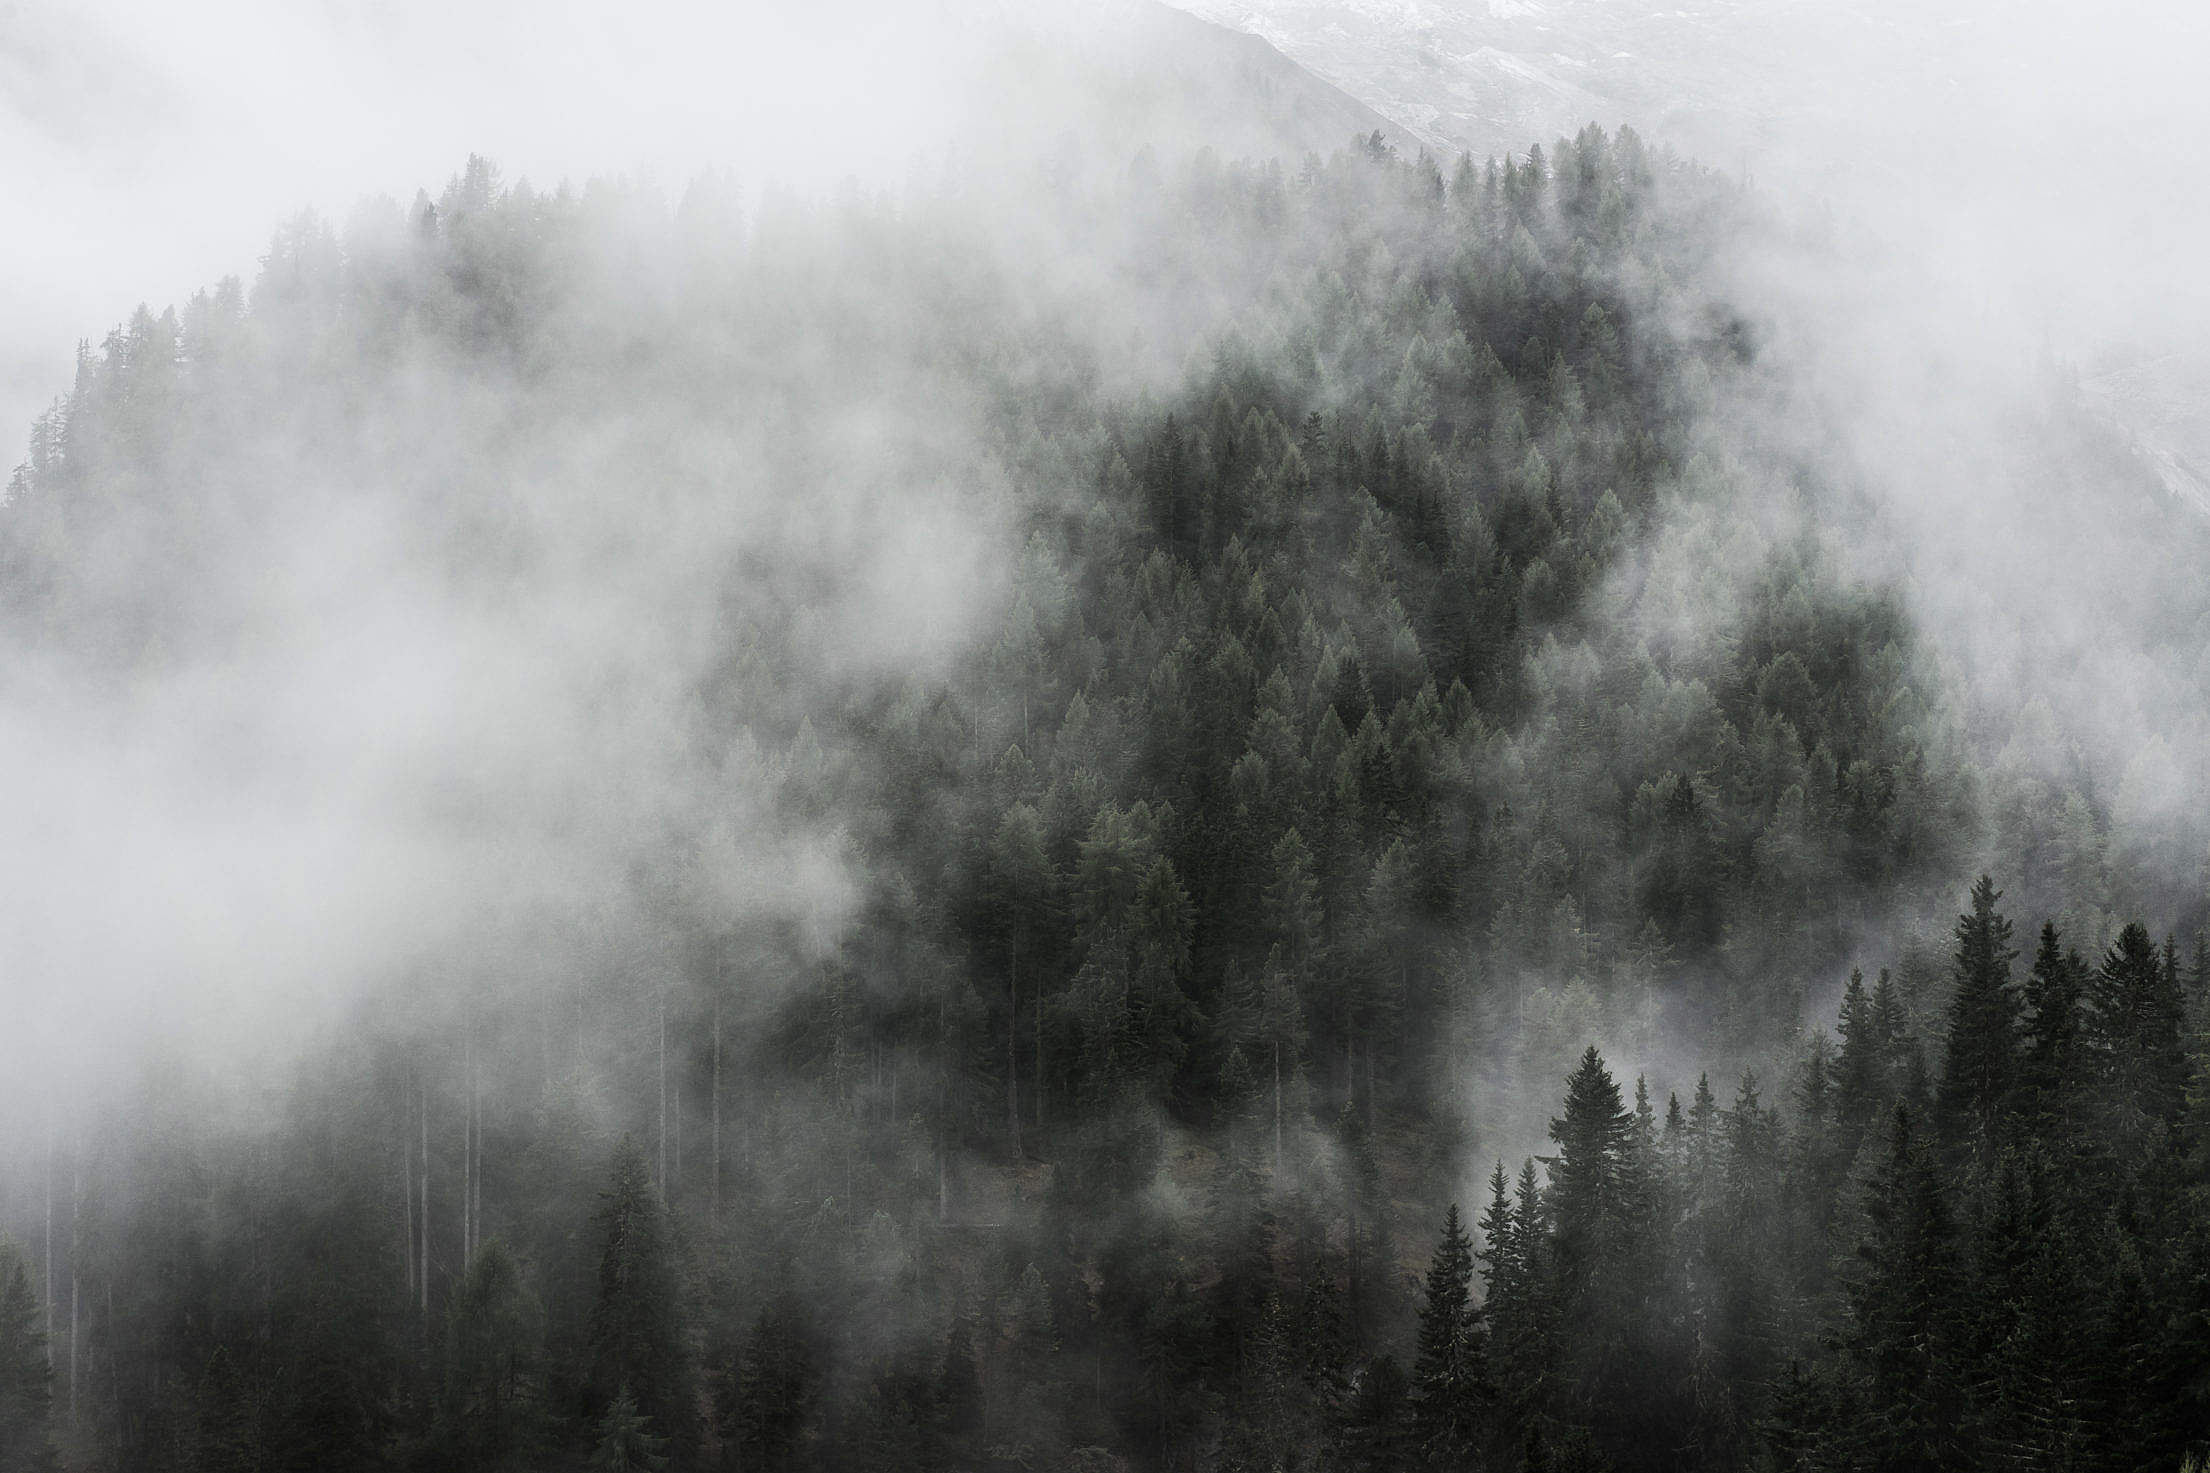 Dark Fog over Woods Free Stock Photo